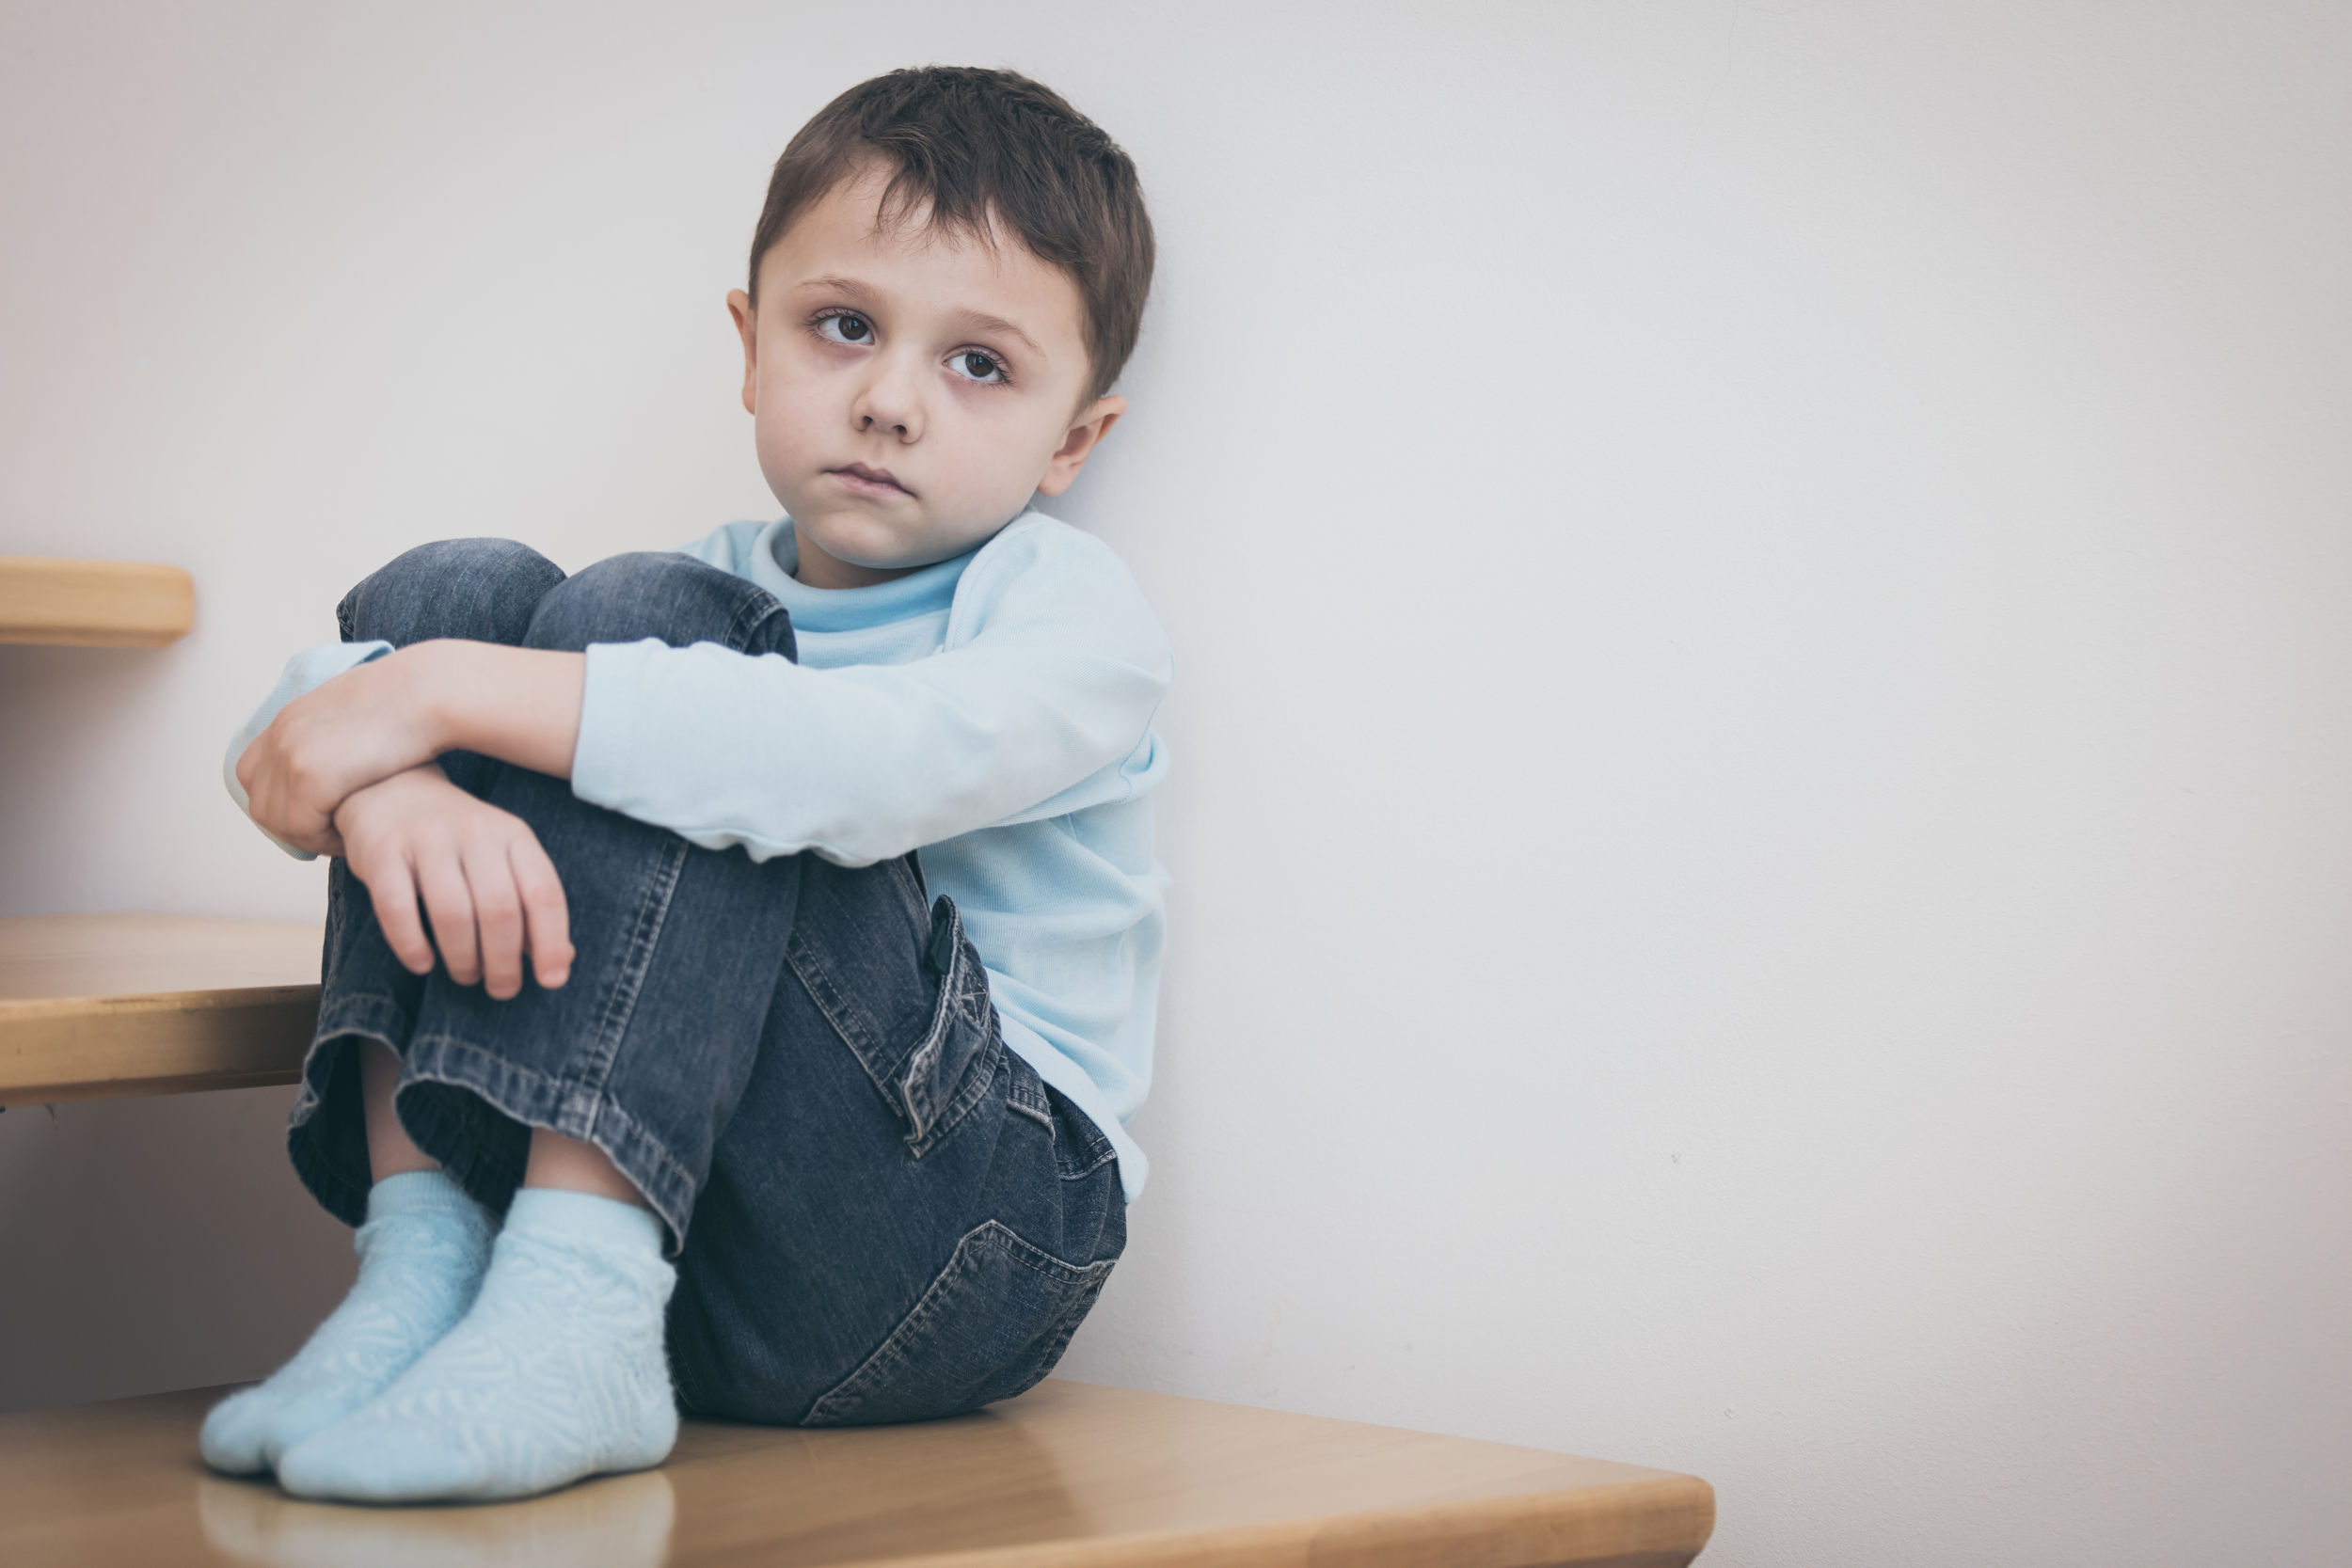 What Is Depression l symptoms of depression l depression in children l depression in teens l the great depression